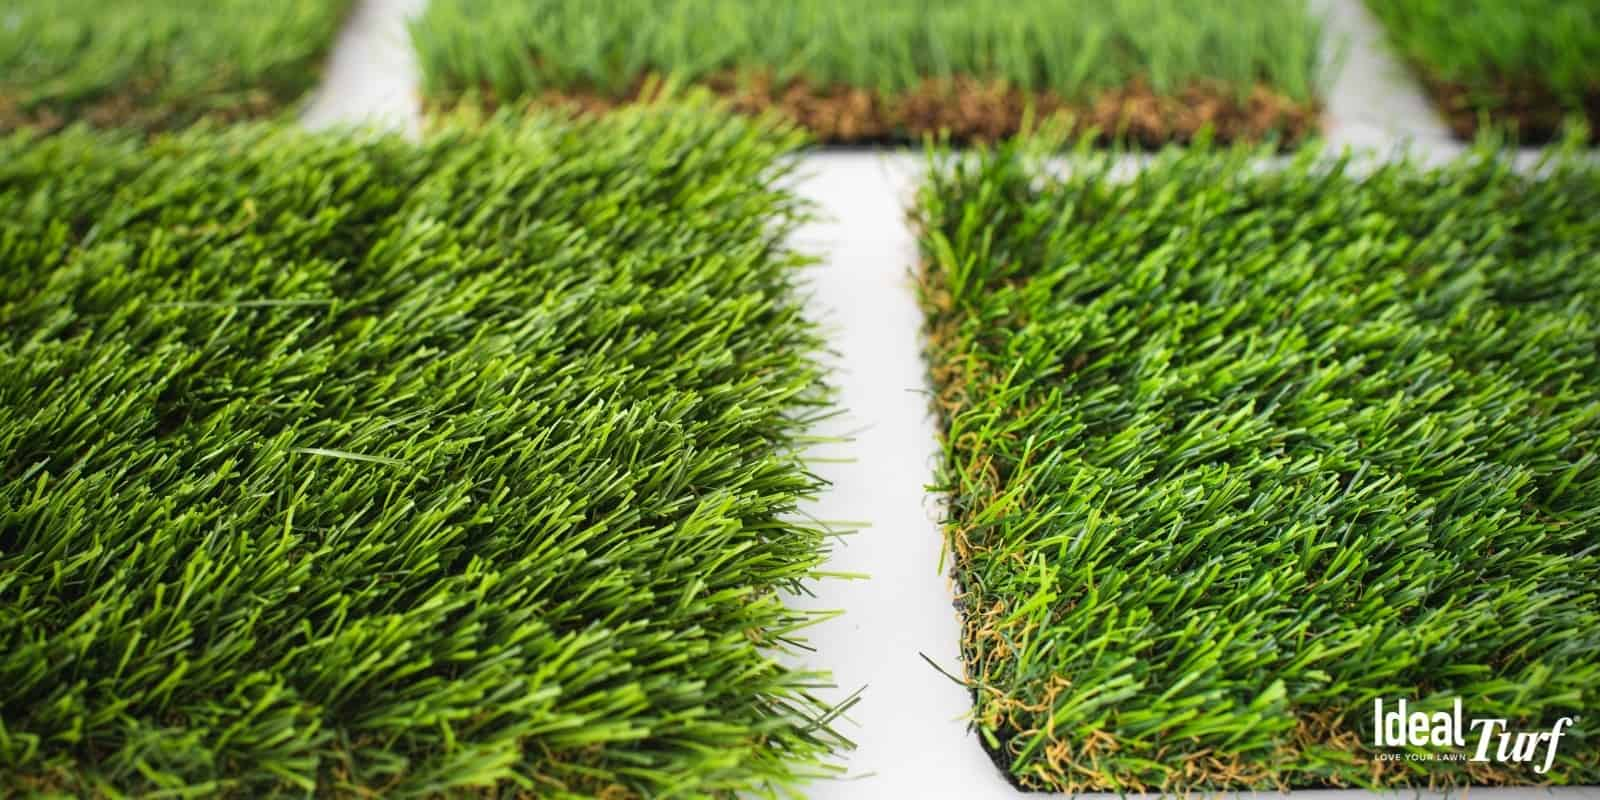 Samples of turf products that appear lush and full on white background